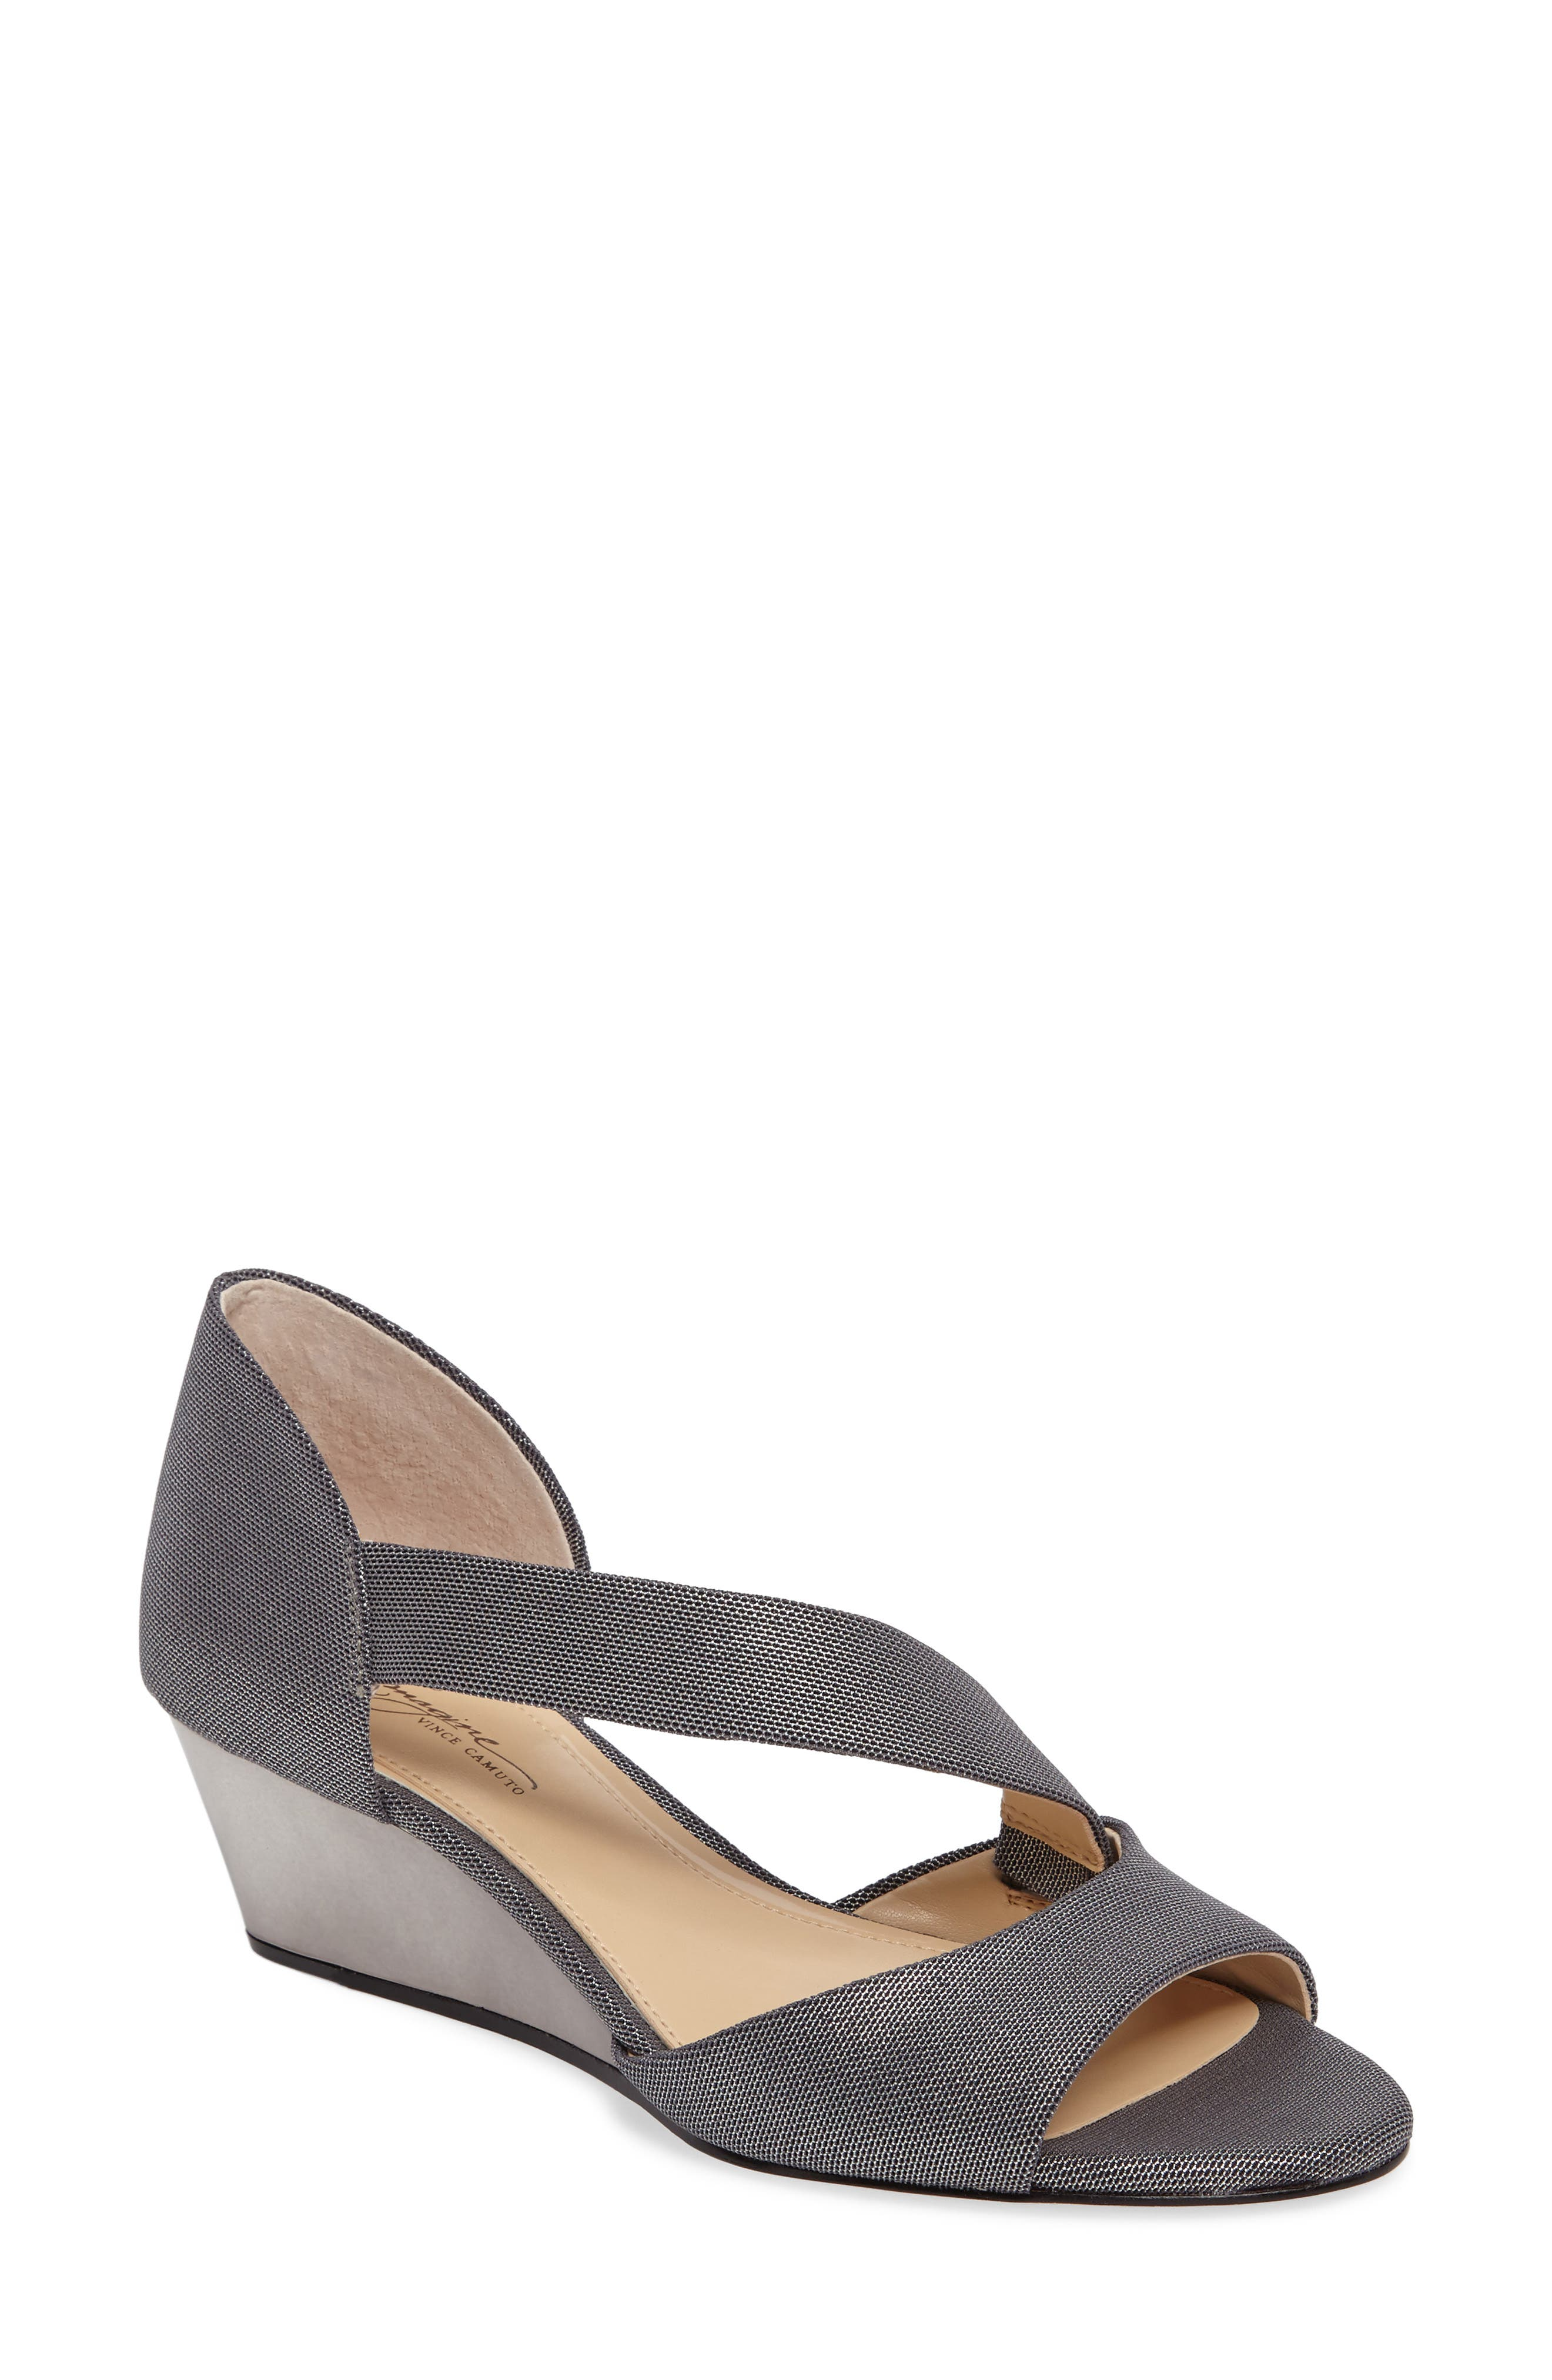 Jefre Wedgee Sandal,                             Main thumbnail 1, color,                             Anthracite Fabric